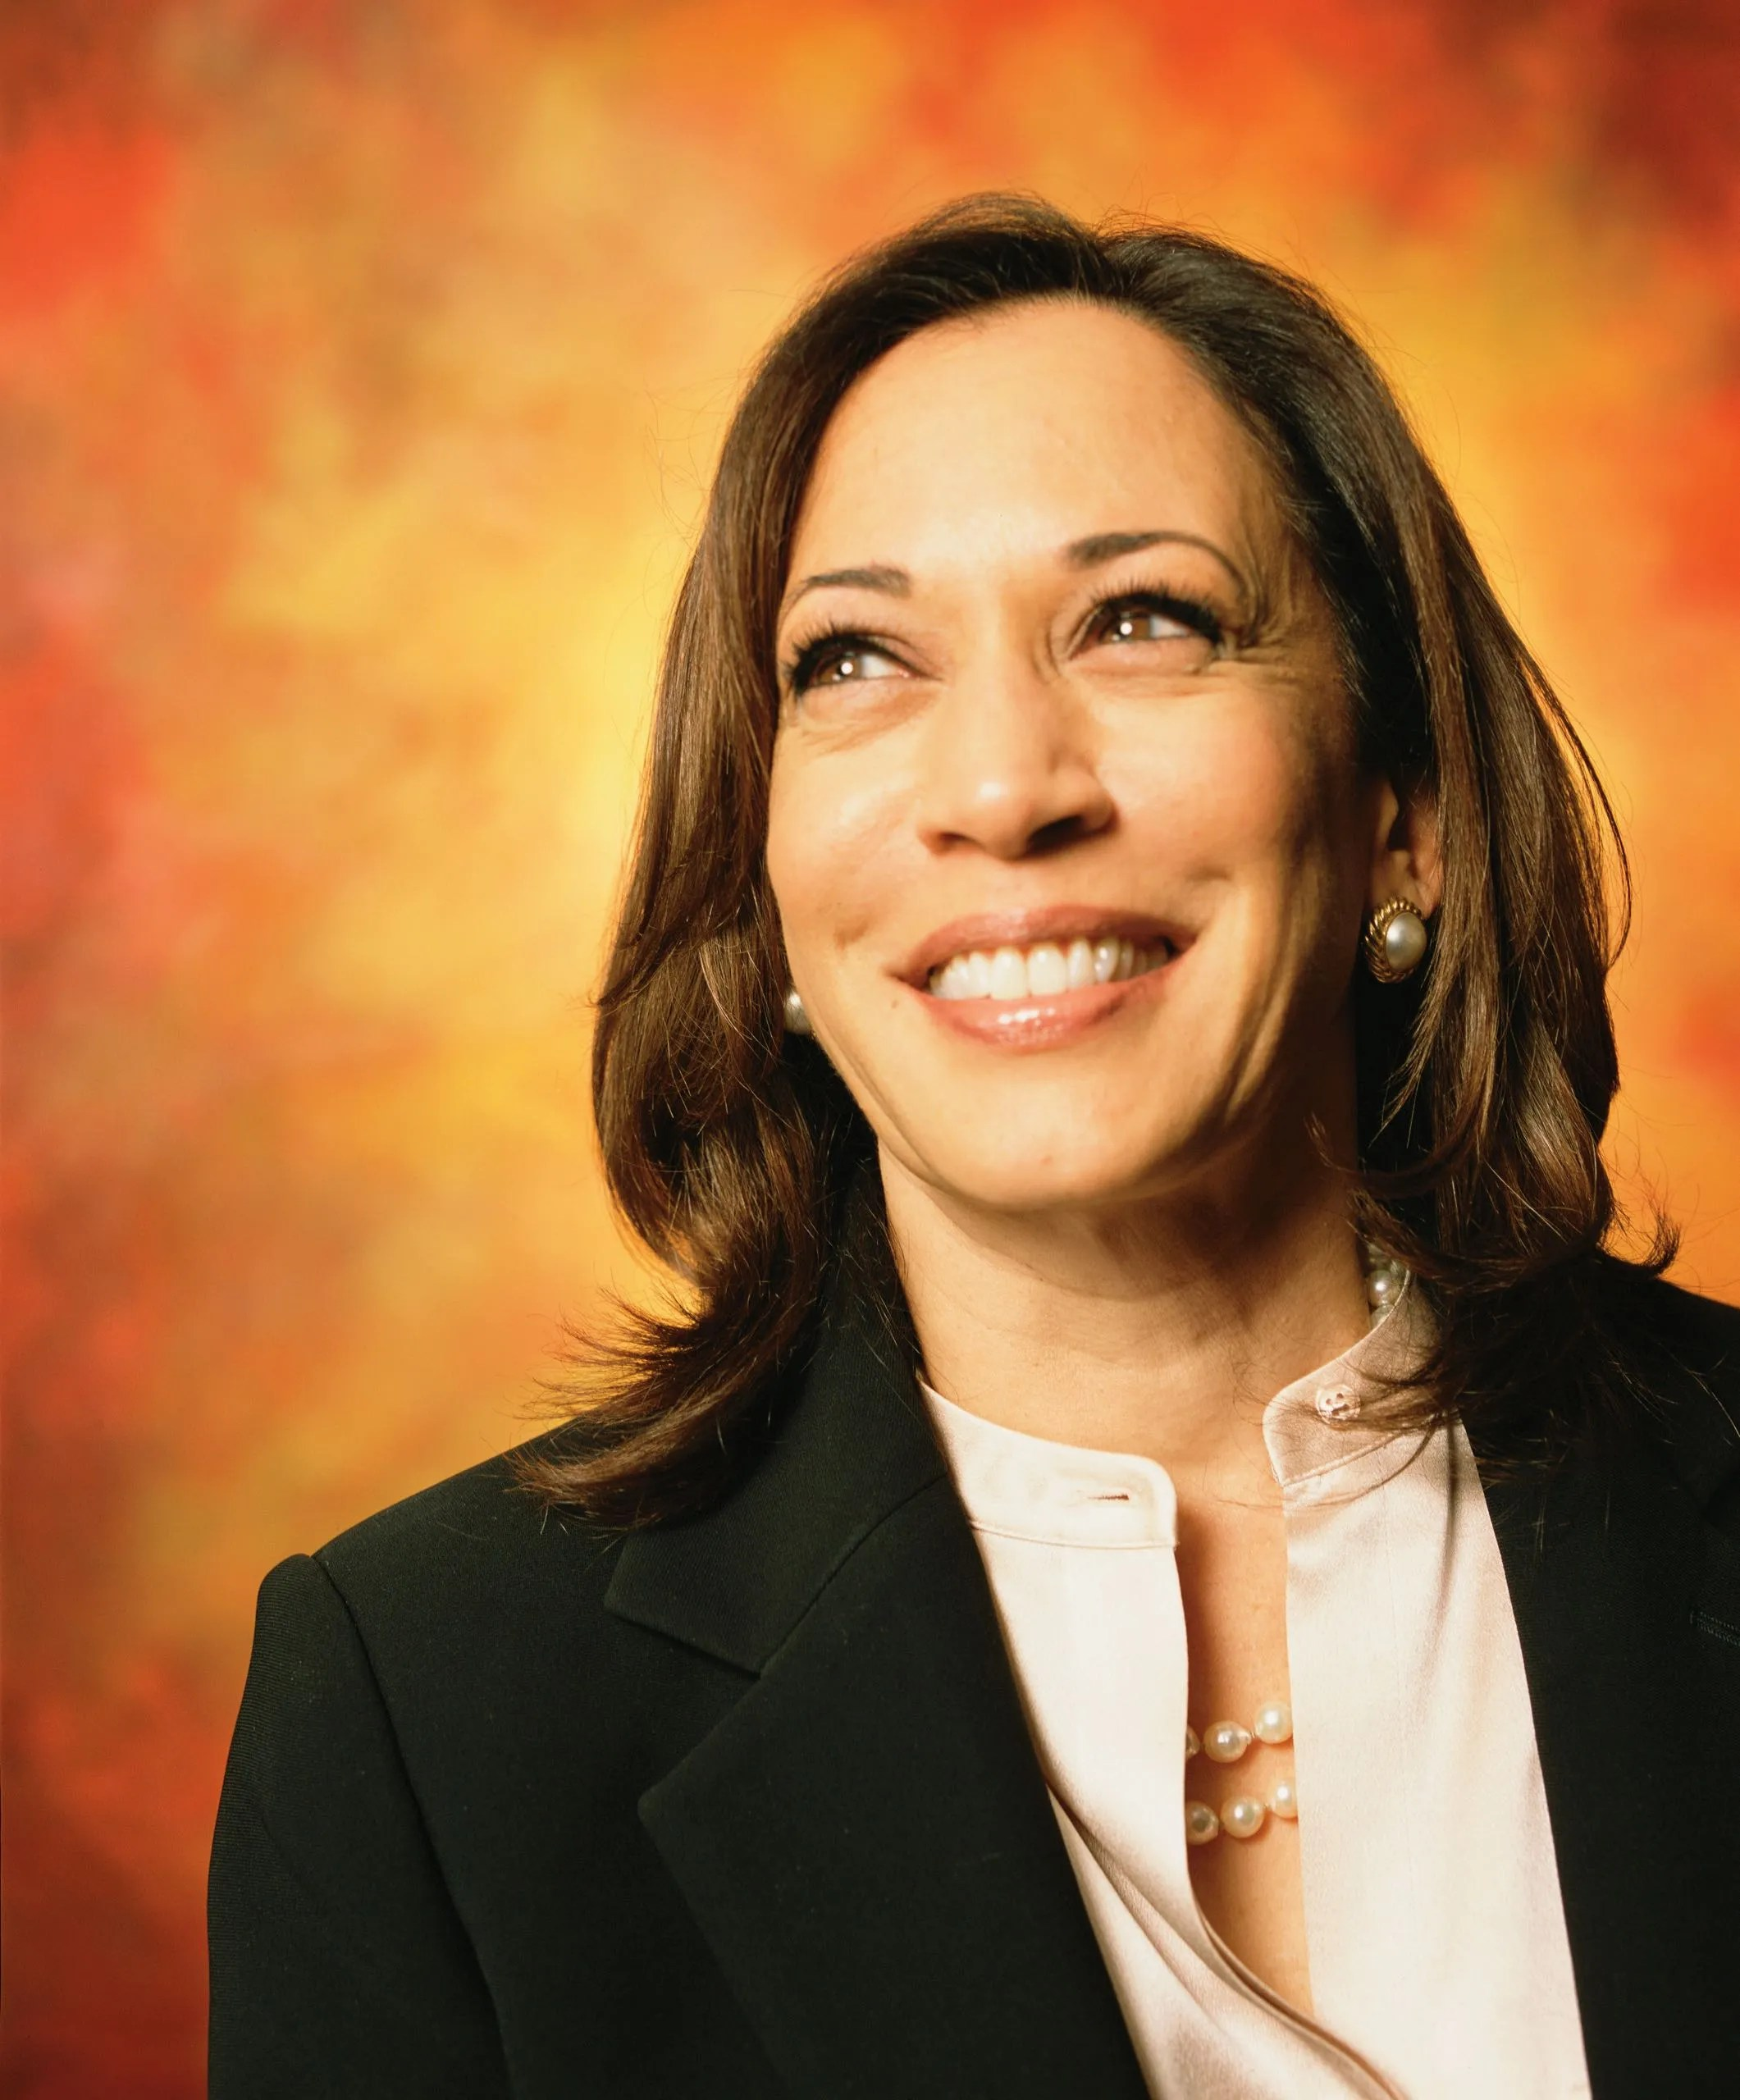 Baby Girl What's Your Name Lemme Talk To Ya : what's, lemme, Kamala, Harris, Makes, Yorker